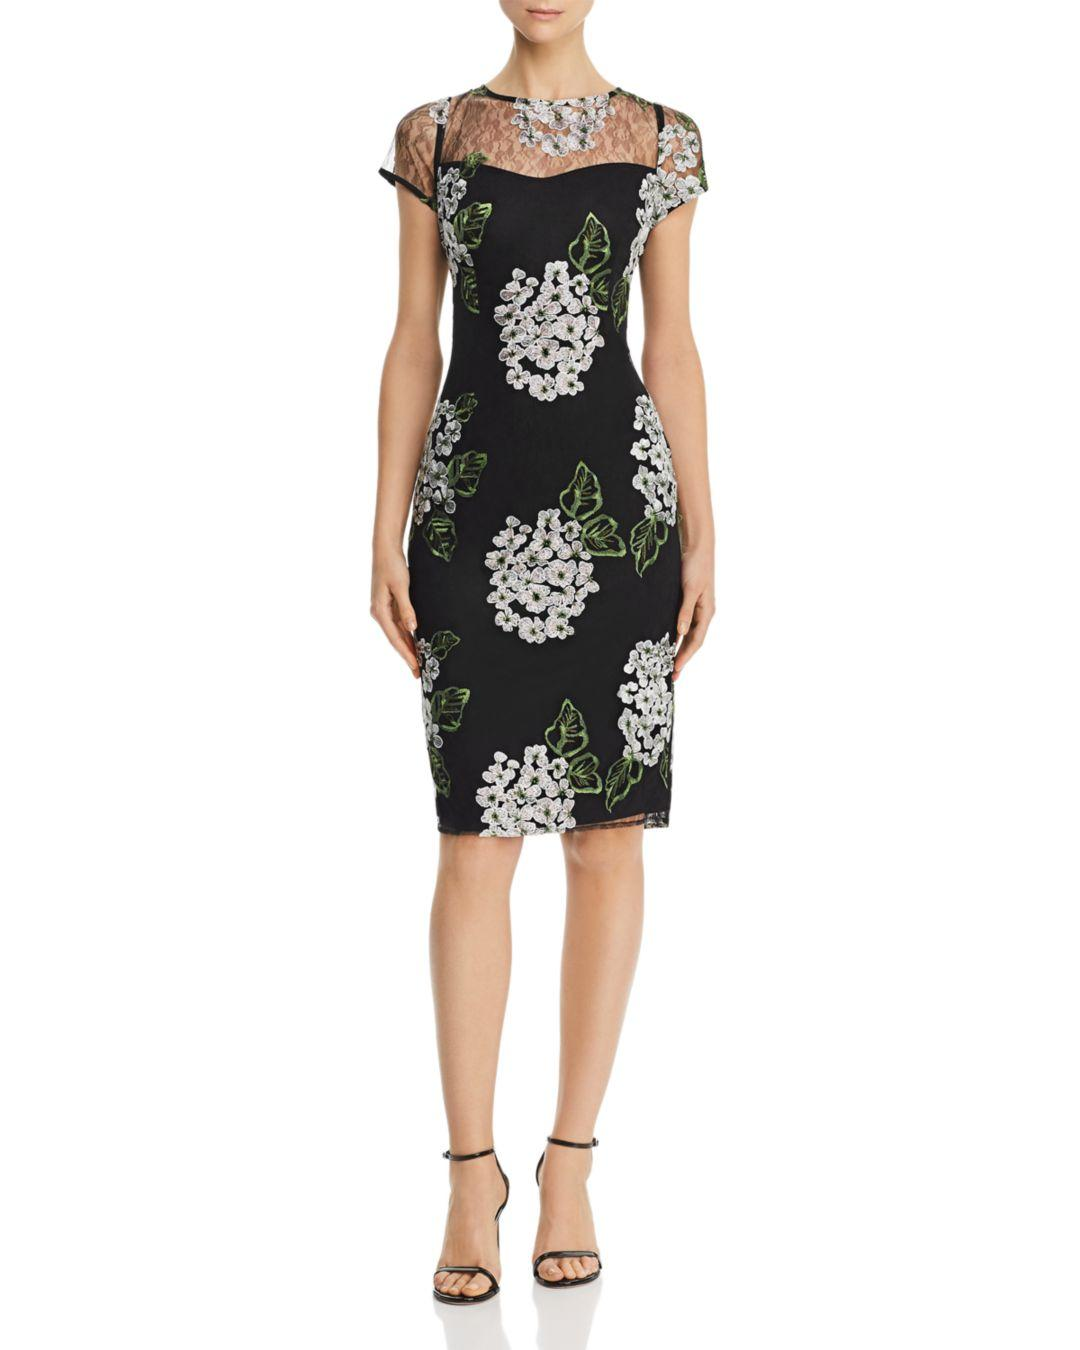 b1c6c89ec243 Lyst - Adrianna Papell Floral-embroidered Sheath Dress in Black